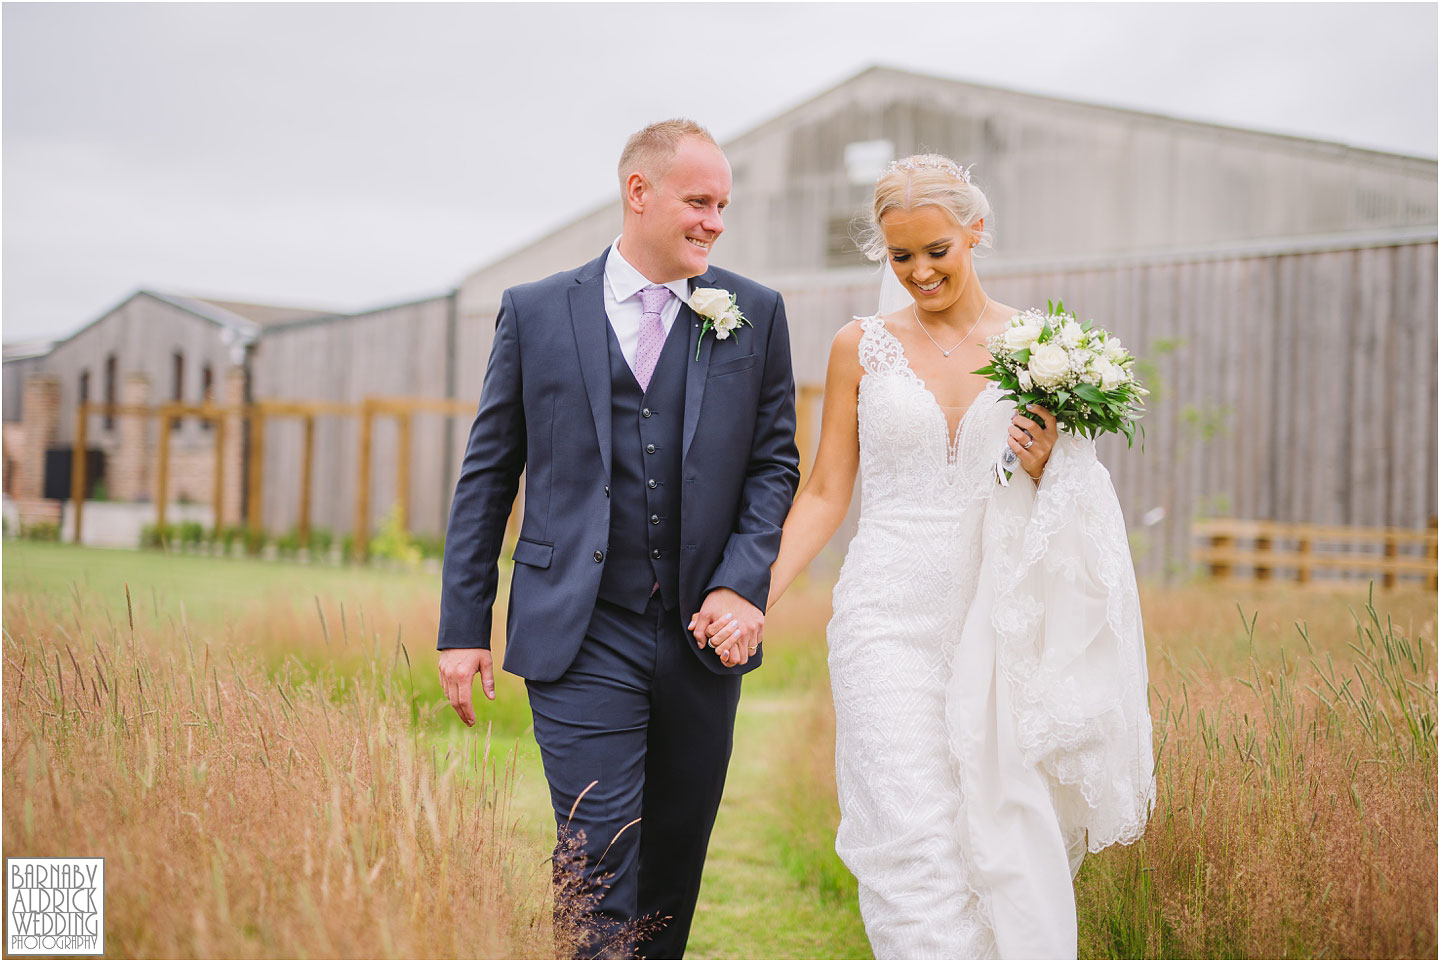 Wedding photos at The Oakwood at Ryther Yorkshire, Oakwood at Ryther wedding photographer, The Oakwood at Ryther wedding photos, Hornington Manor venue, The Old Grain Store at The Oakwood at Ryther,